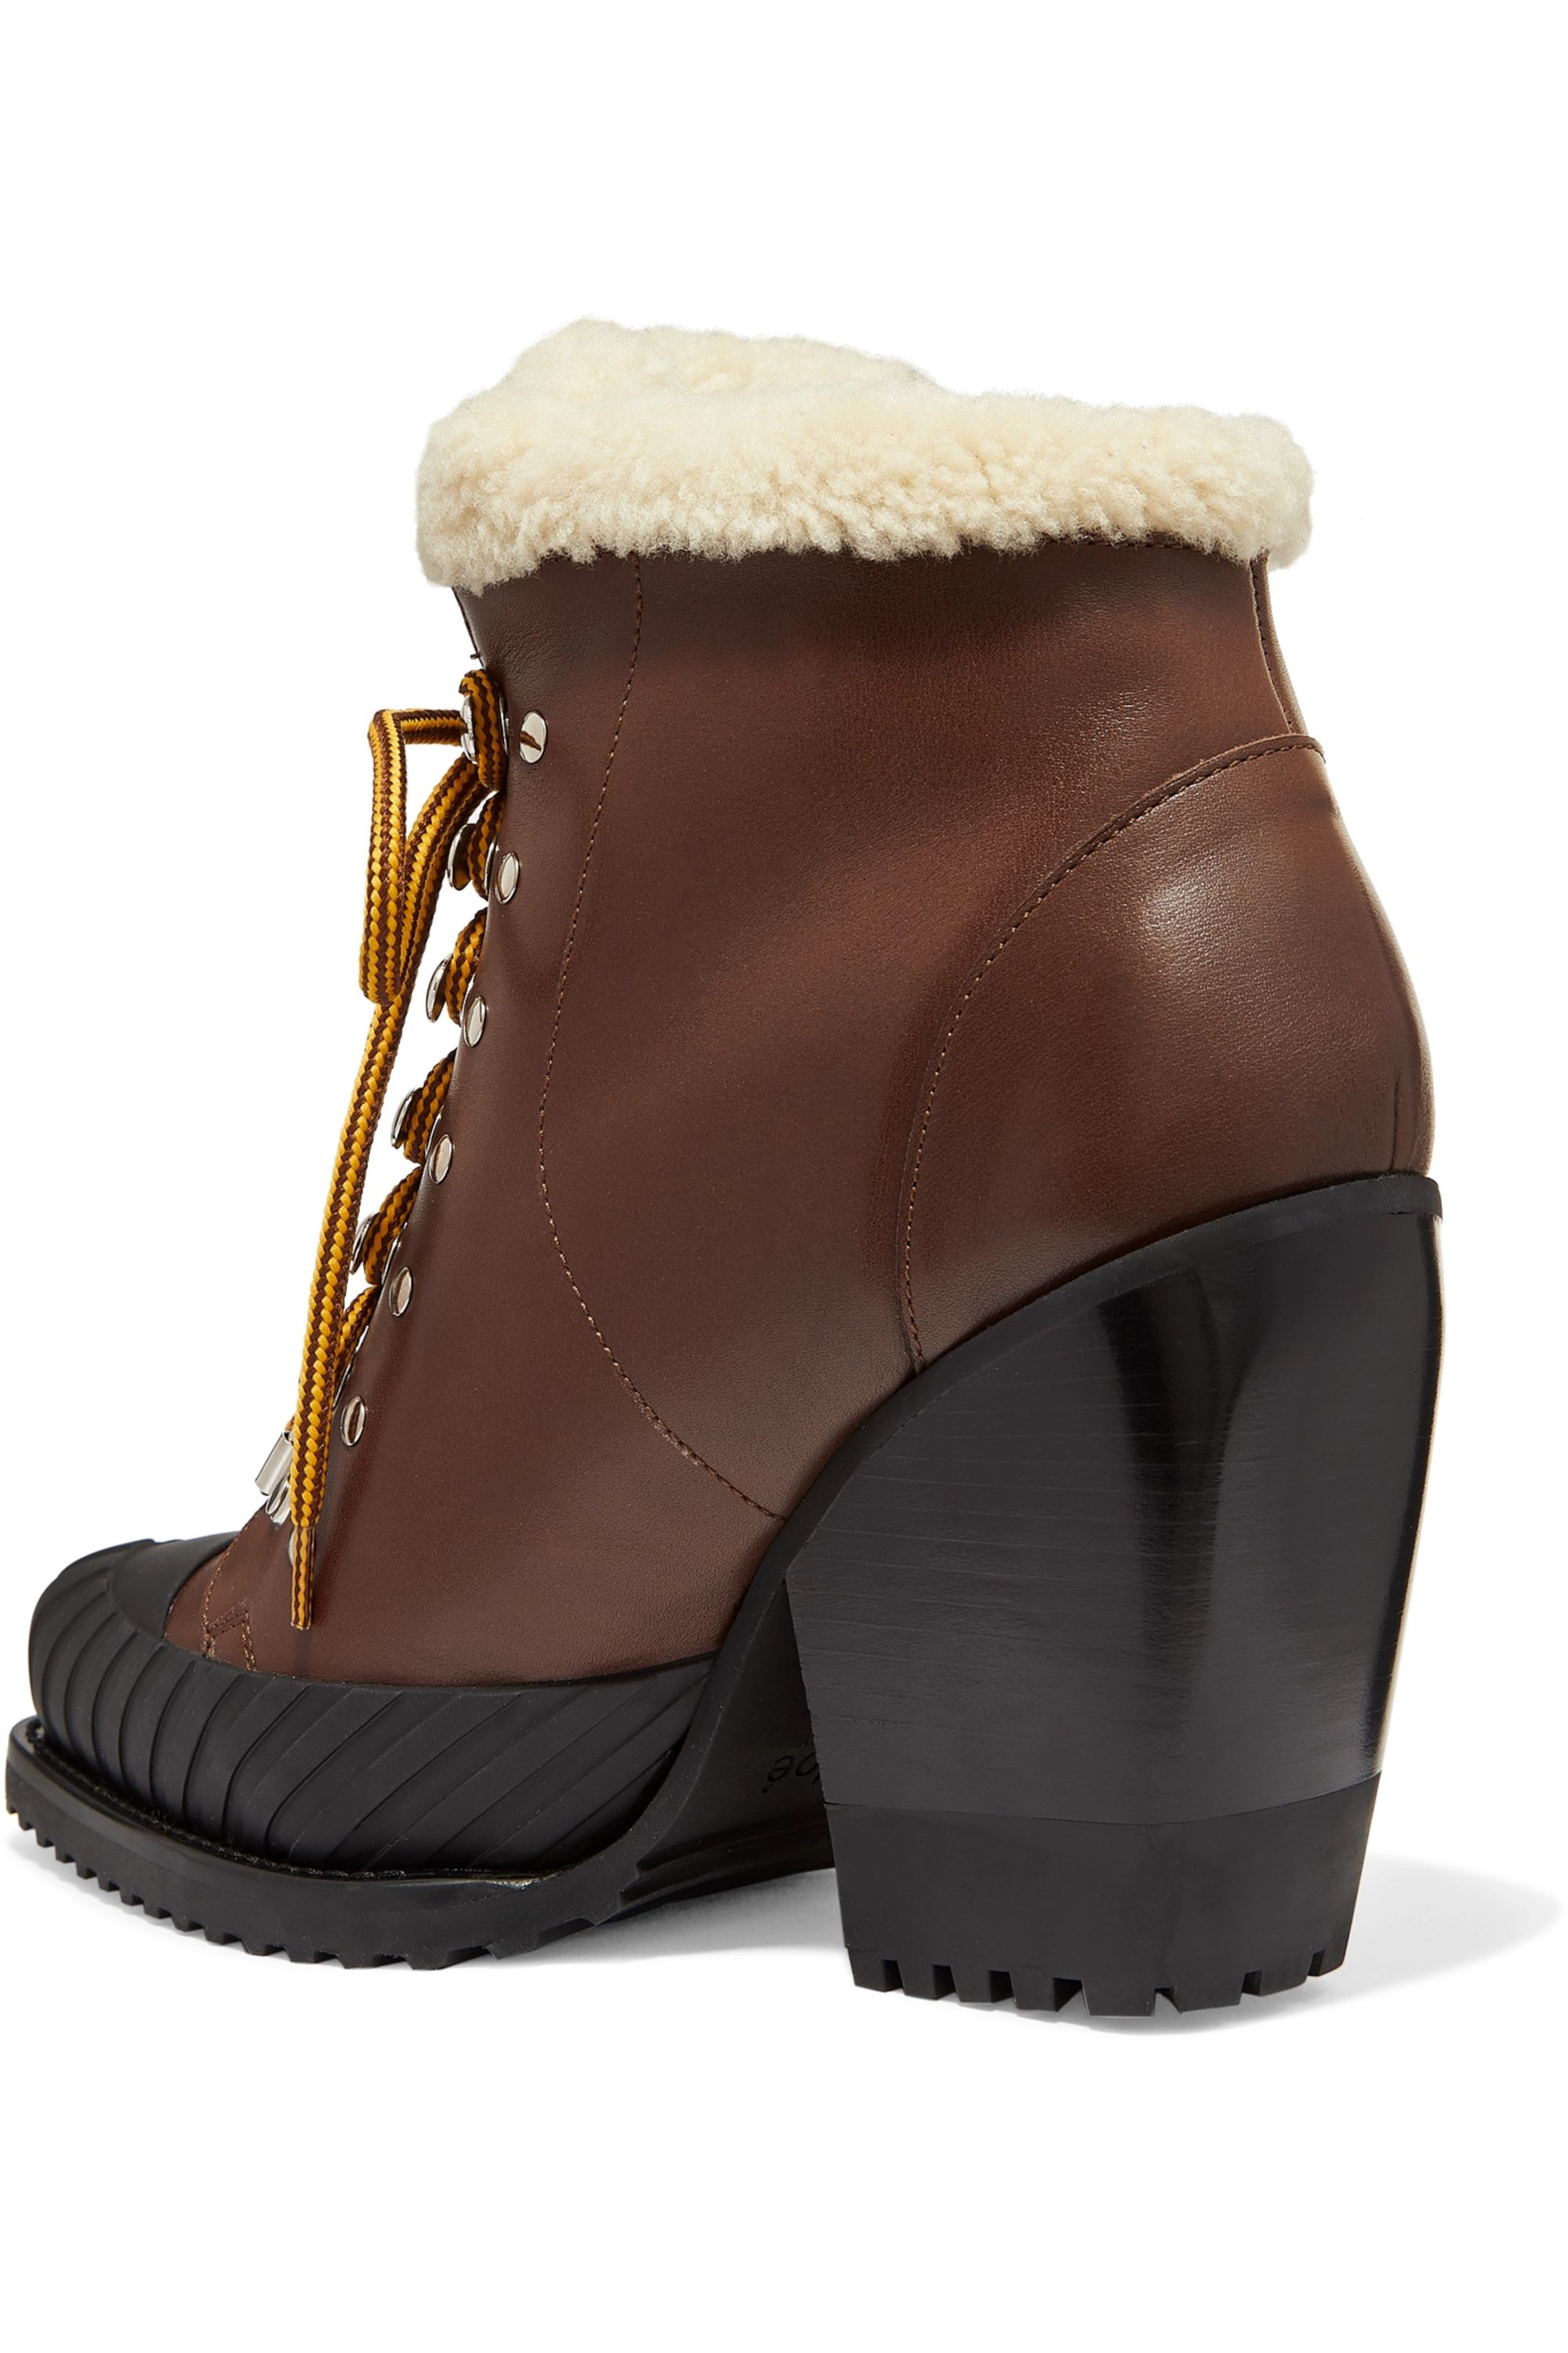 Chloé Rylee shearling-trimmed leather and rubber ankle boots